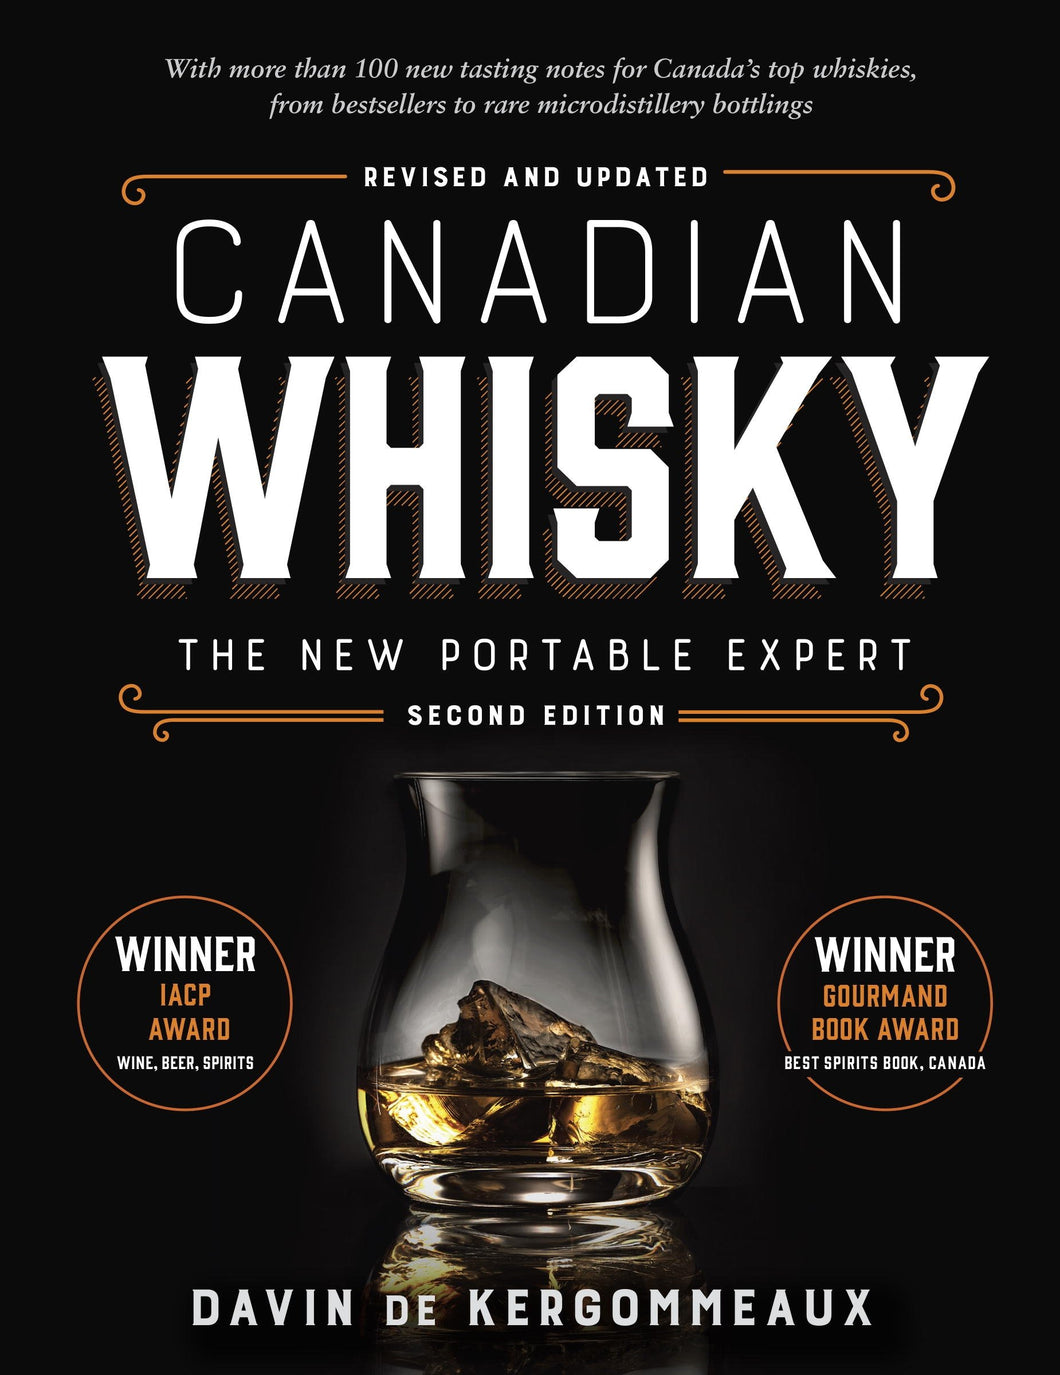 Canadian Whisky - The New Portable Expert | Second Edition